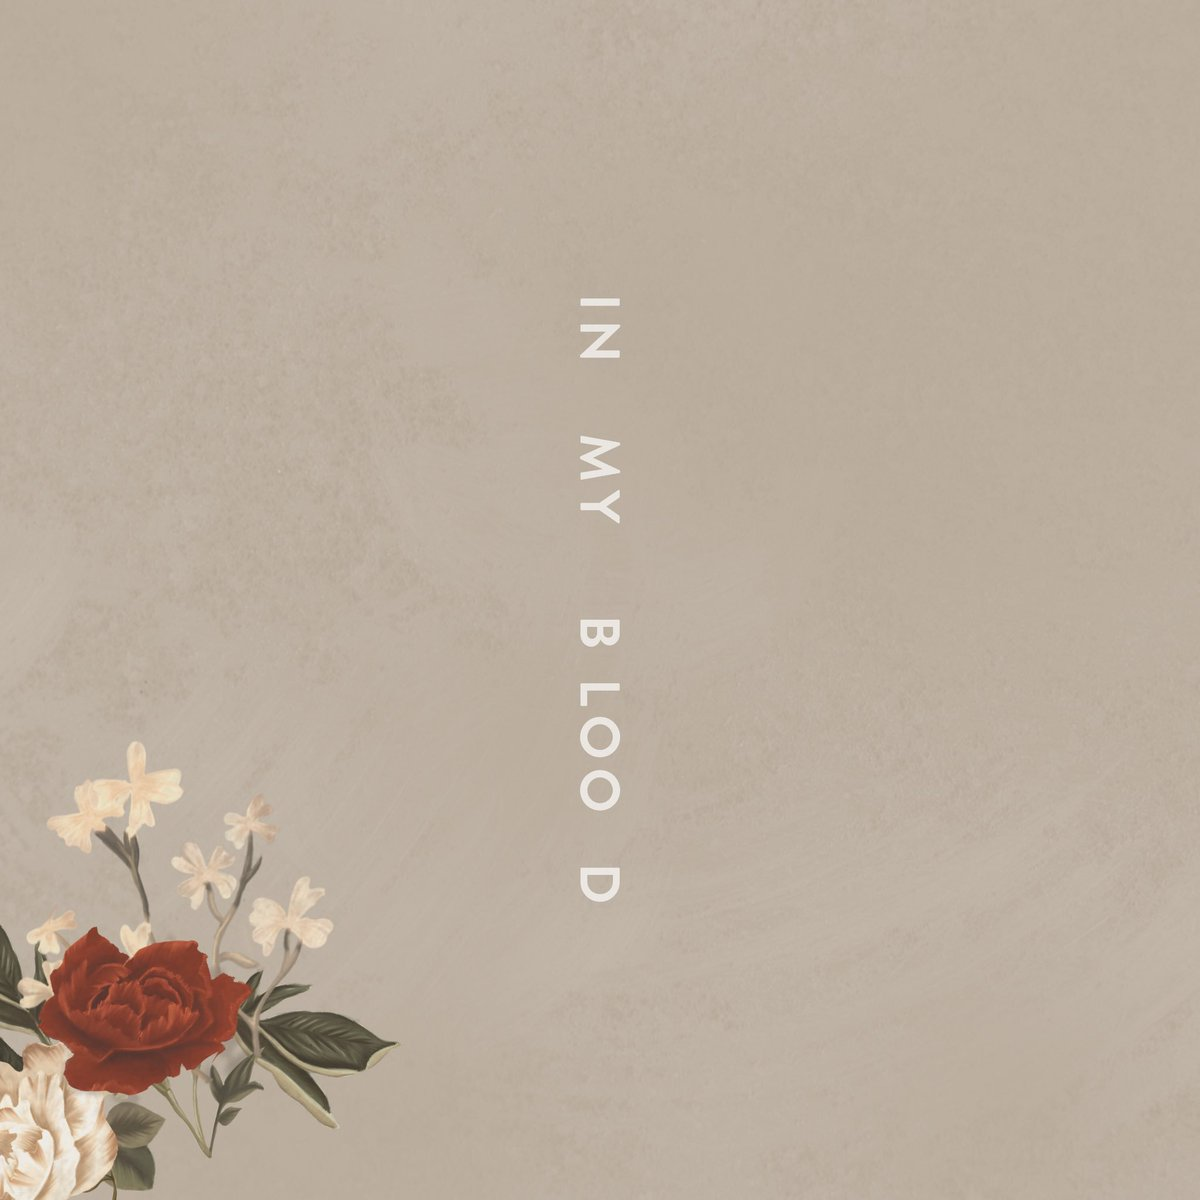 #InMyBlood March 22nd https://t.co/cqCLvHlZmI